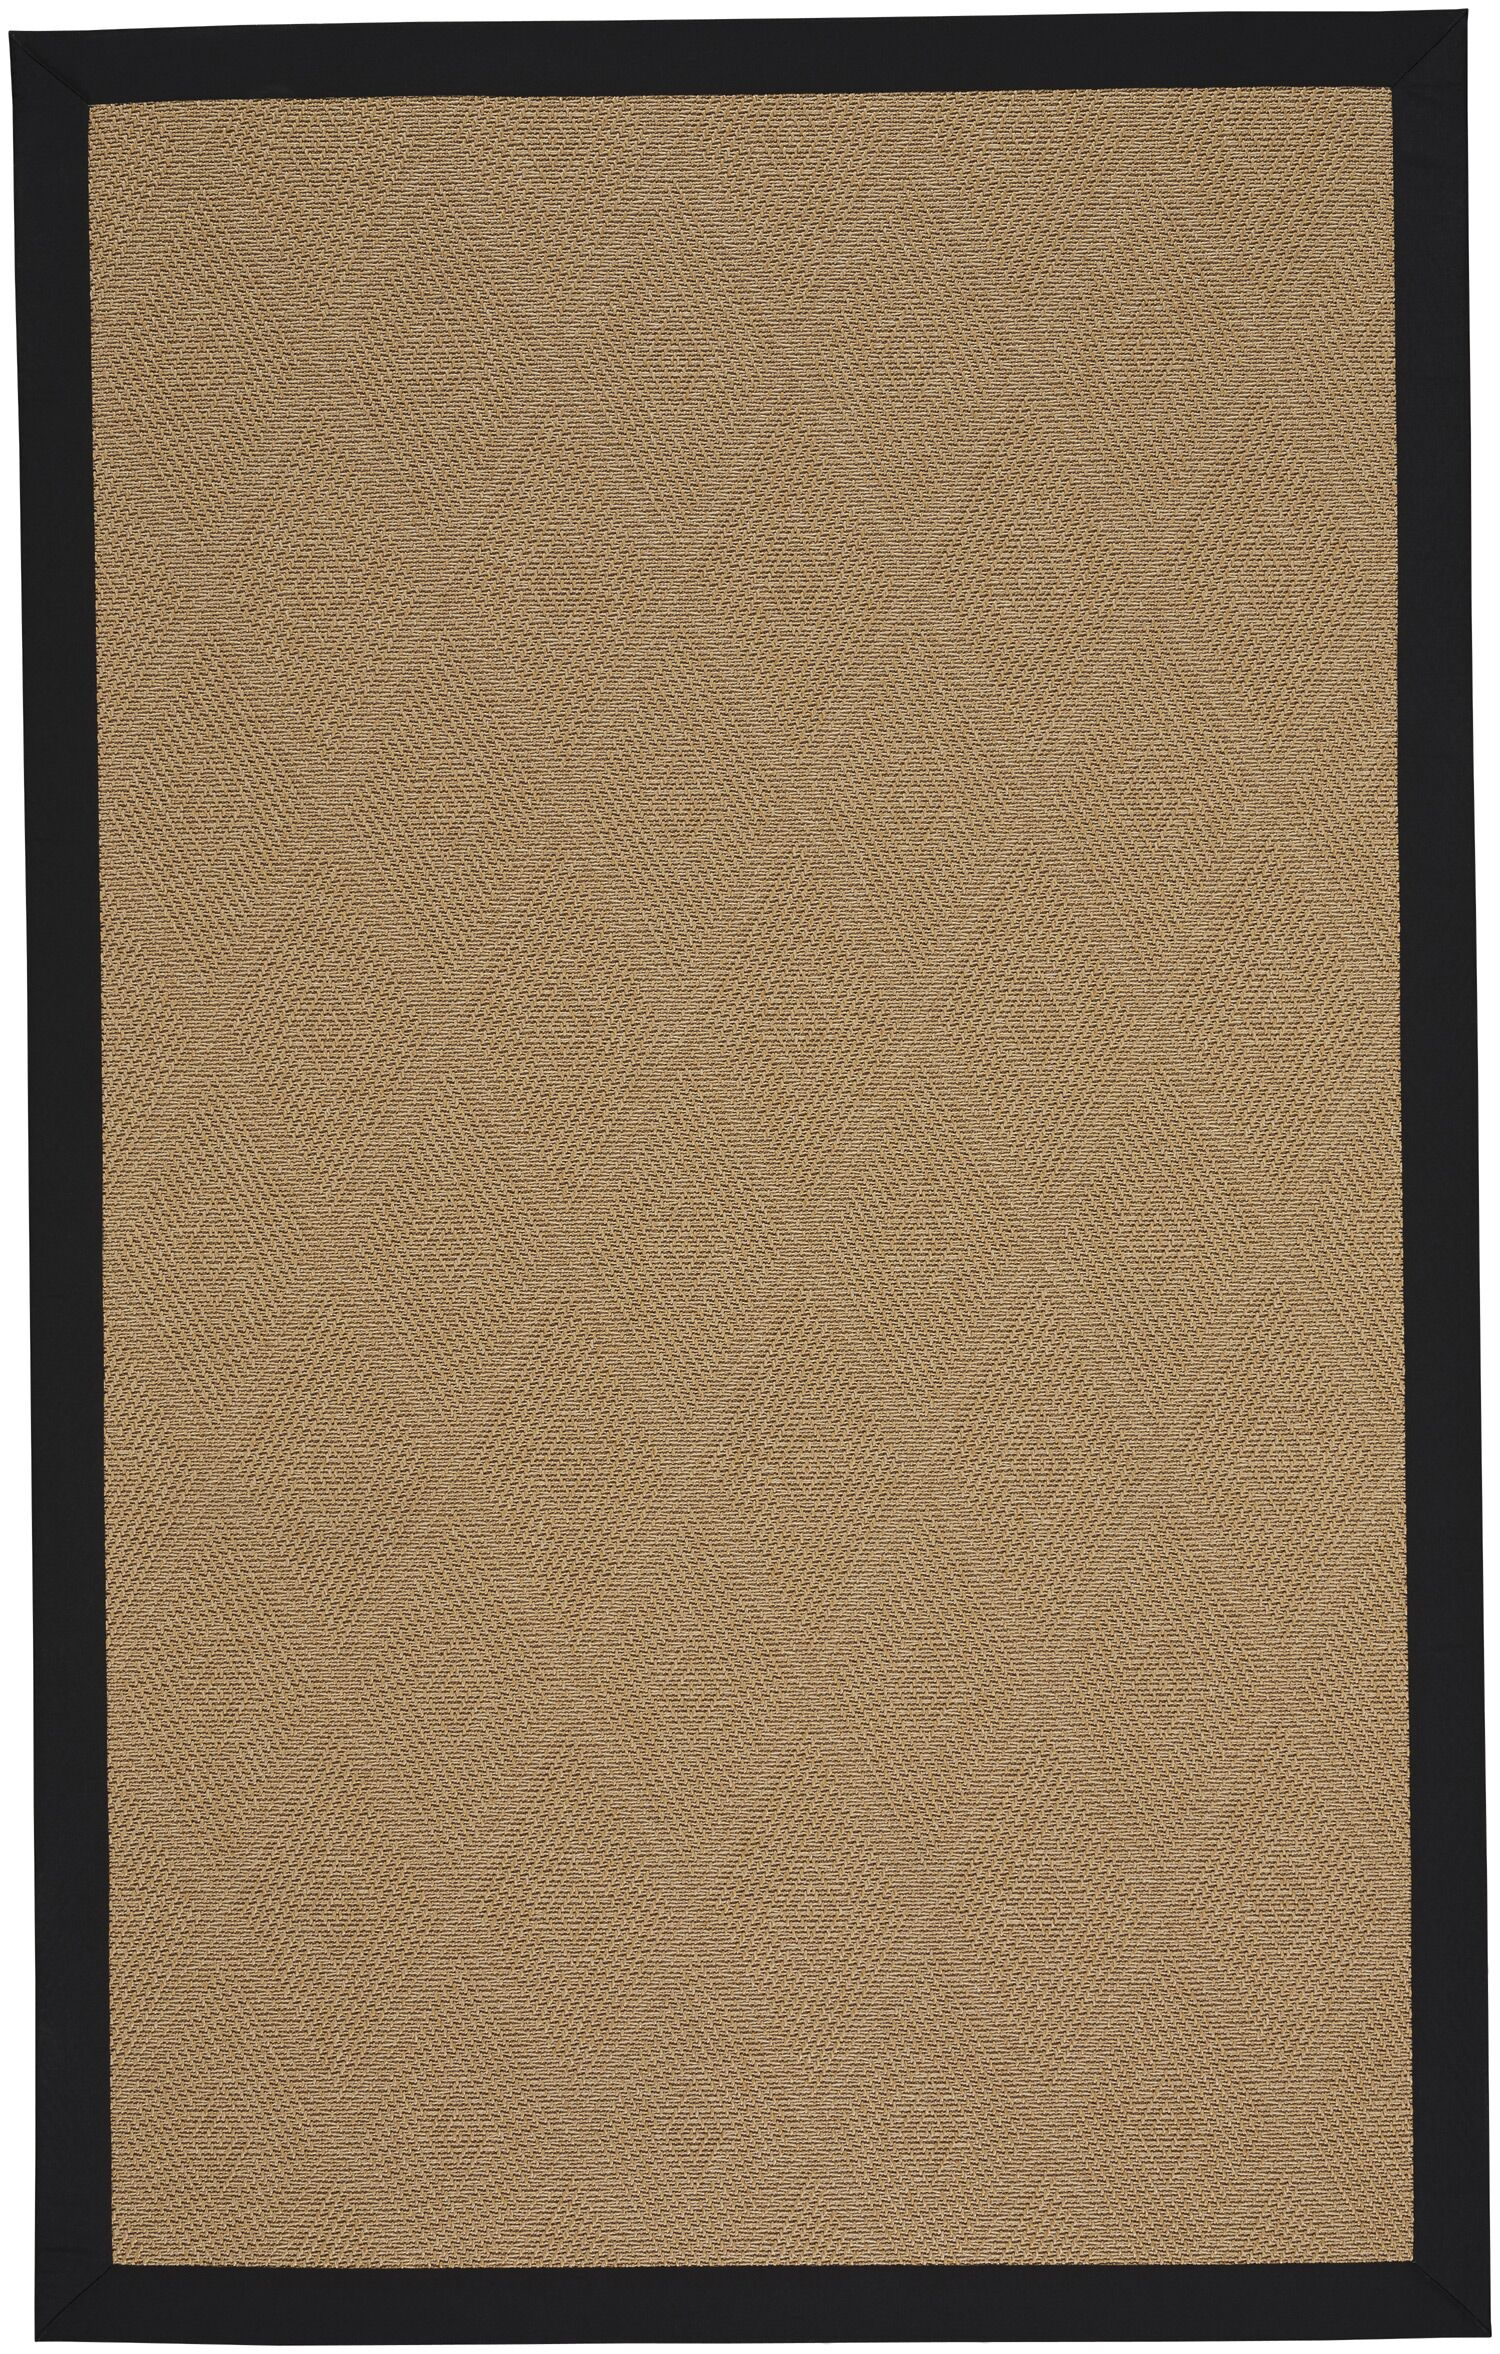 Gresham Agave Braided Ebony Tan Indoor/Outdoor Area Rug Rug Size: Rectangle 12' x 15'